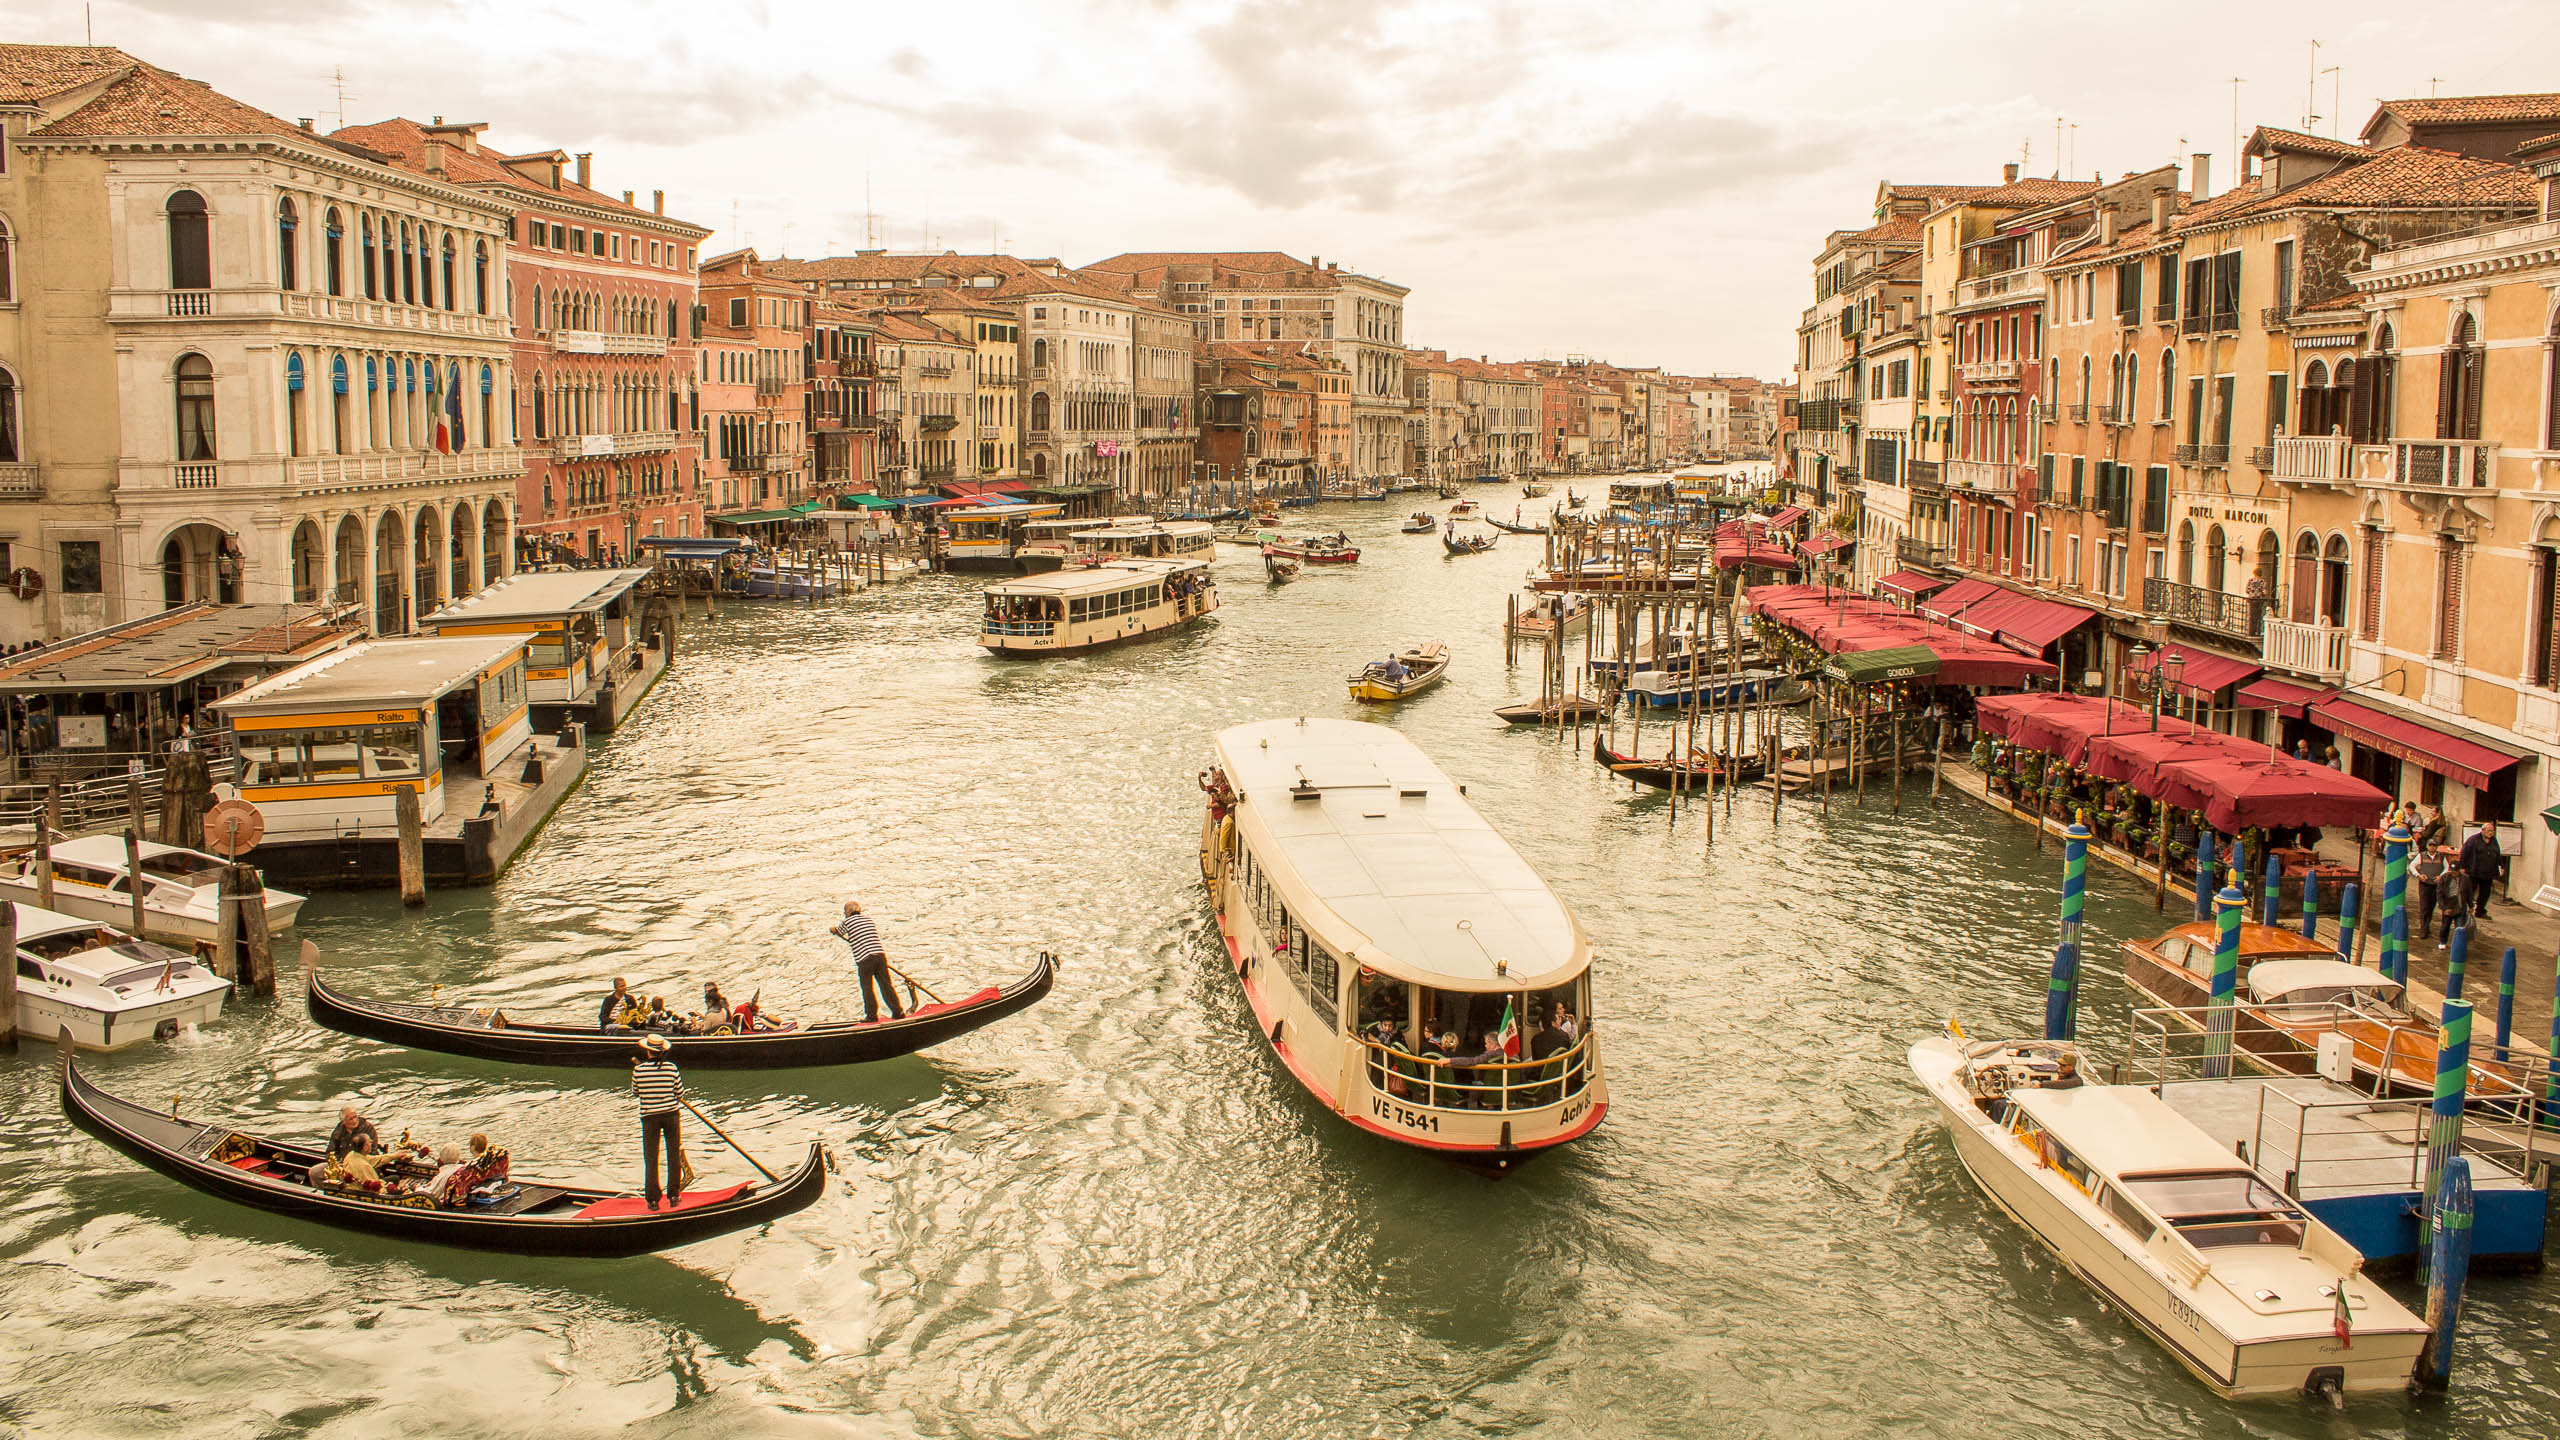 Photo of The Grand Canal, Venice